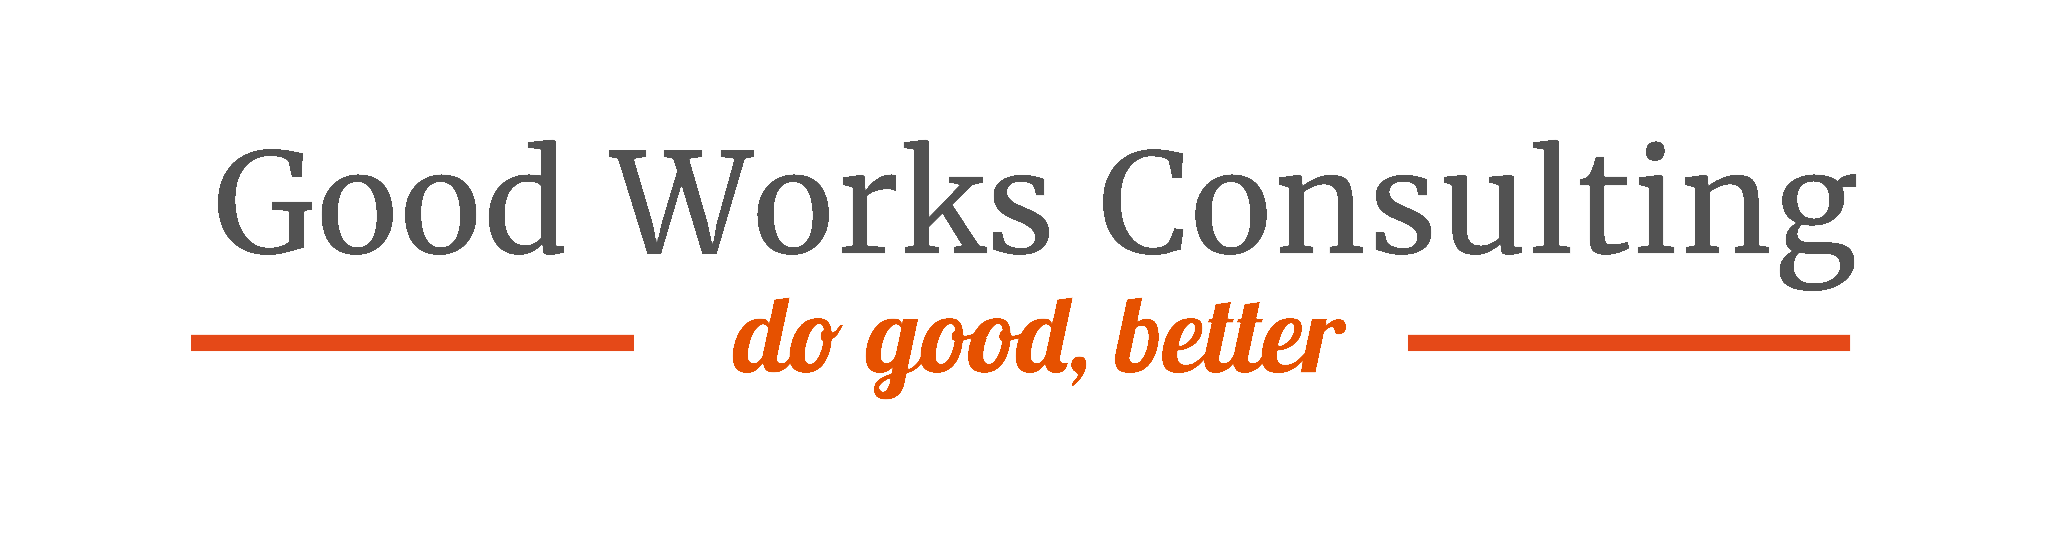 Good Works Consulting